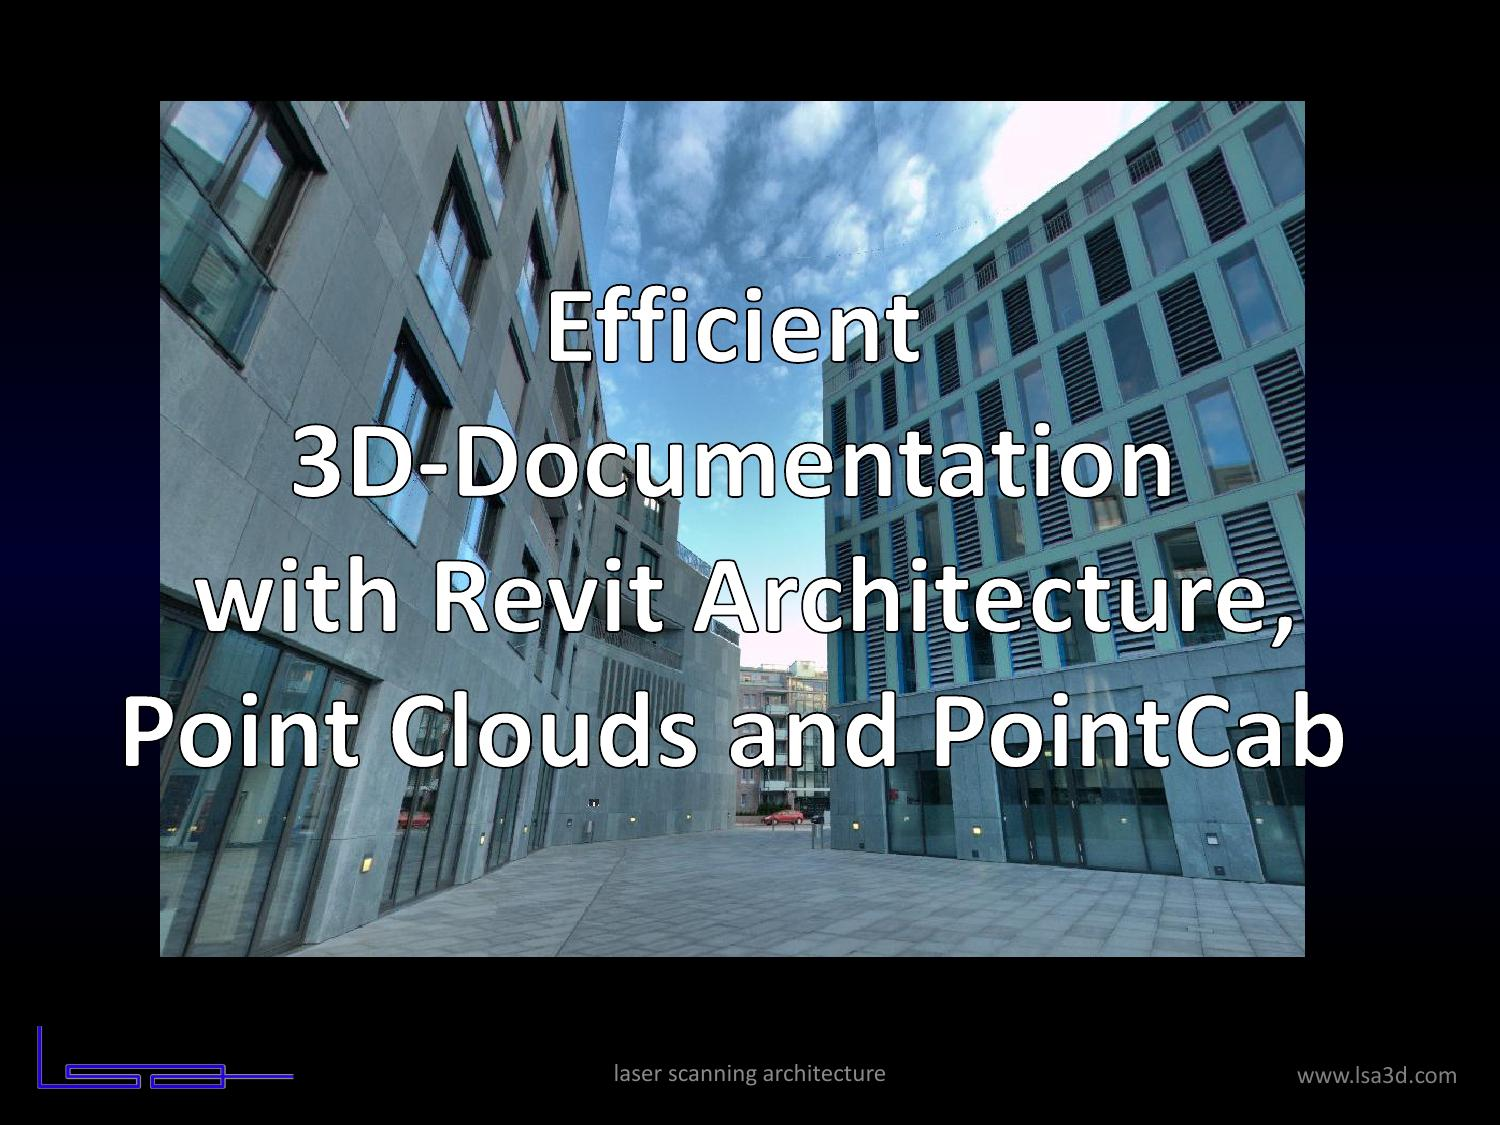 3D-Documentation with Scandata and Revit Architecture